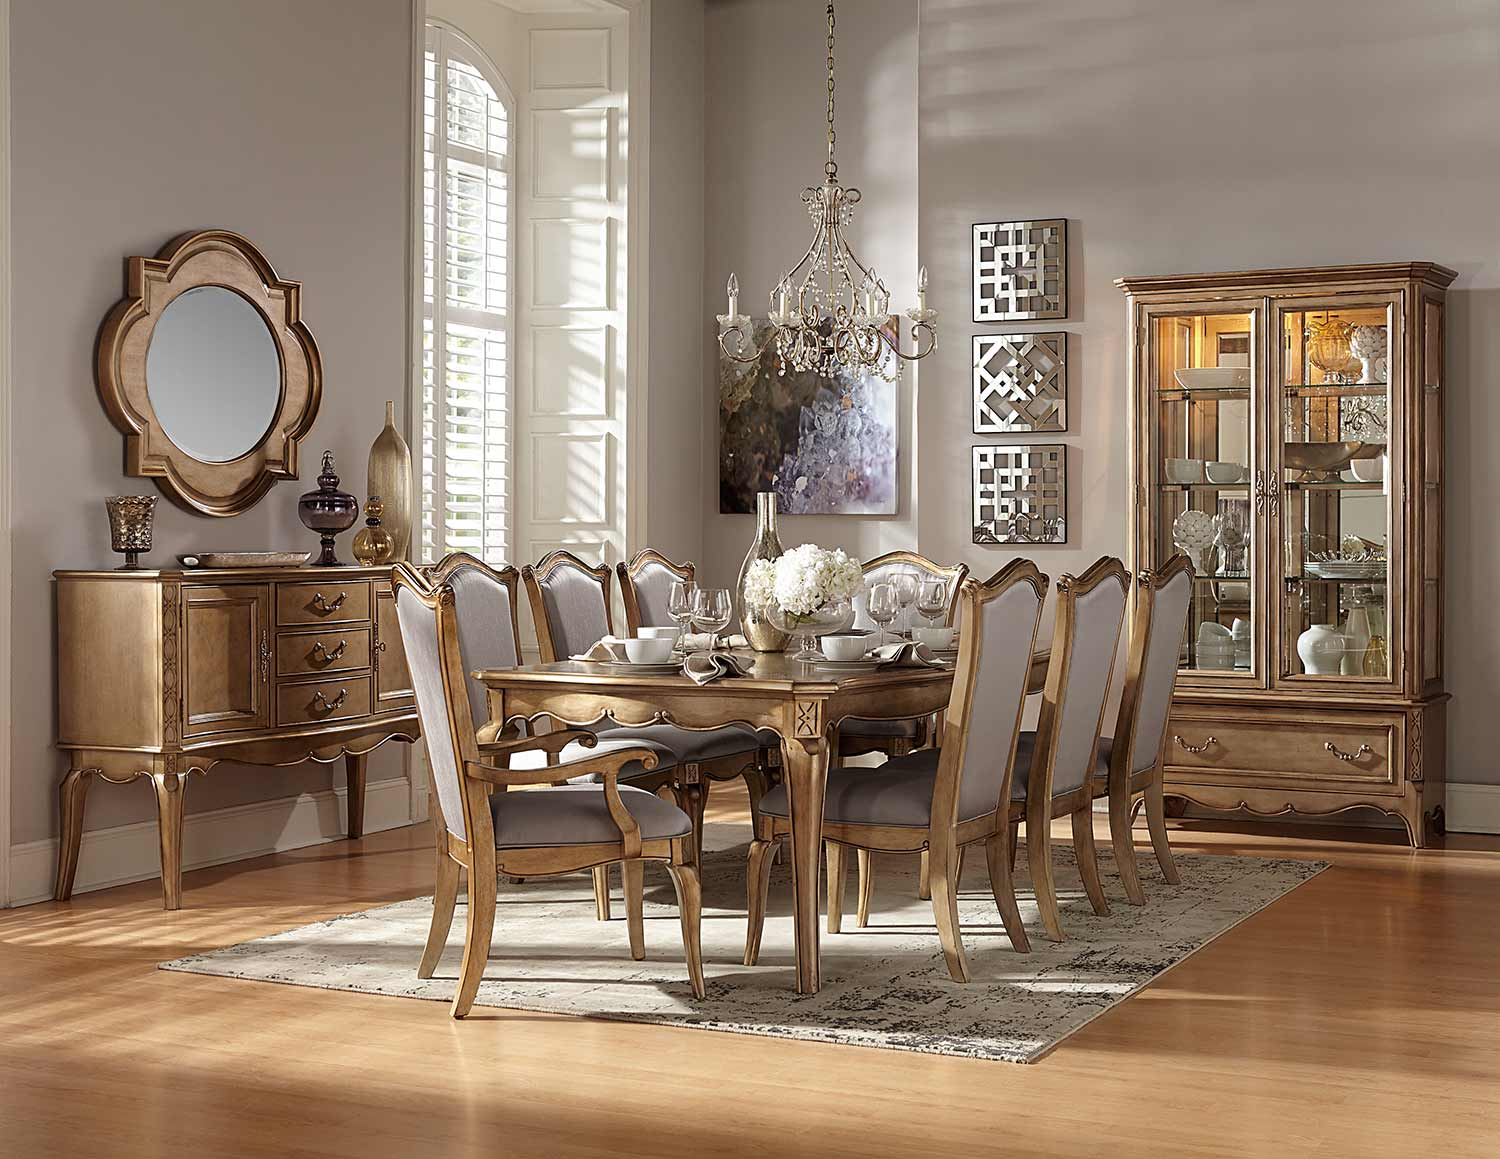 Homelegance Chambord Dining Set - Antique Gold